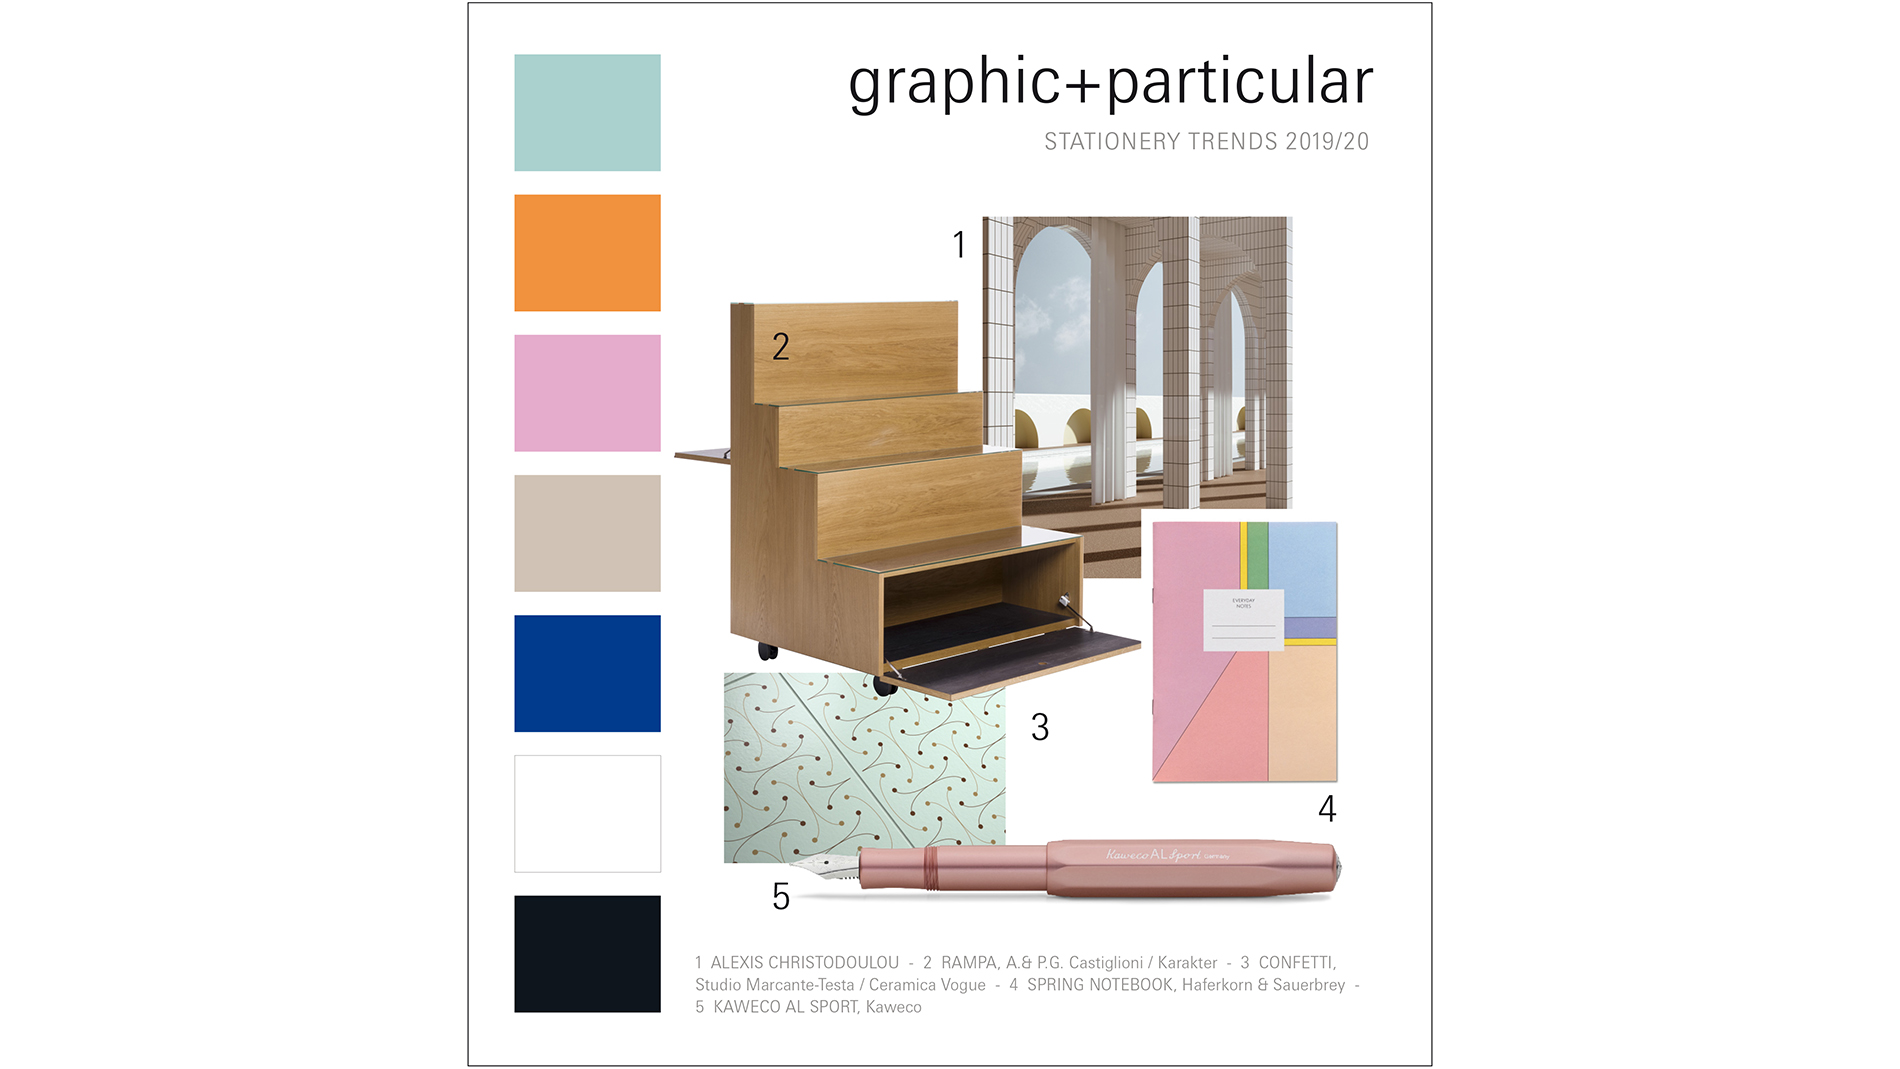 Paperworld 2019/20: graphic + particular